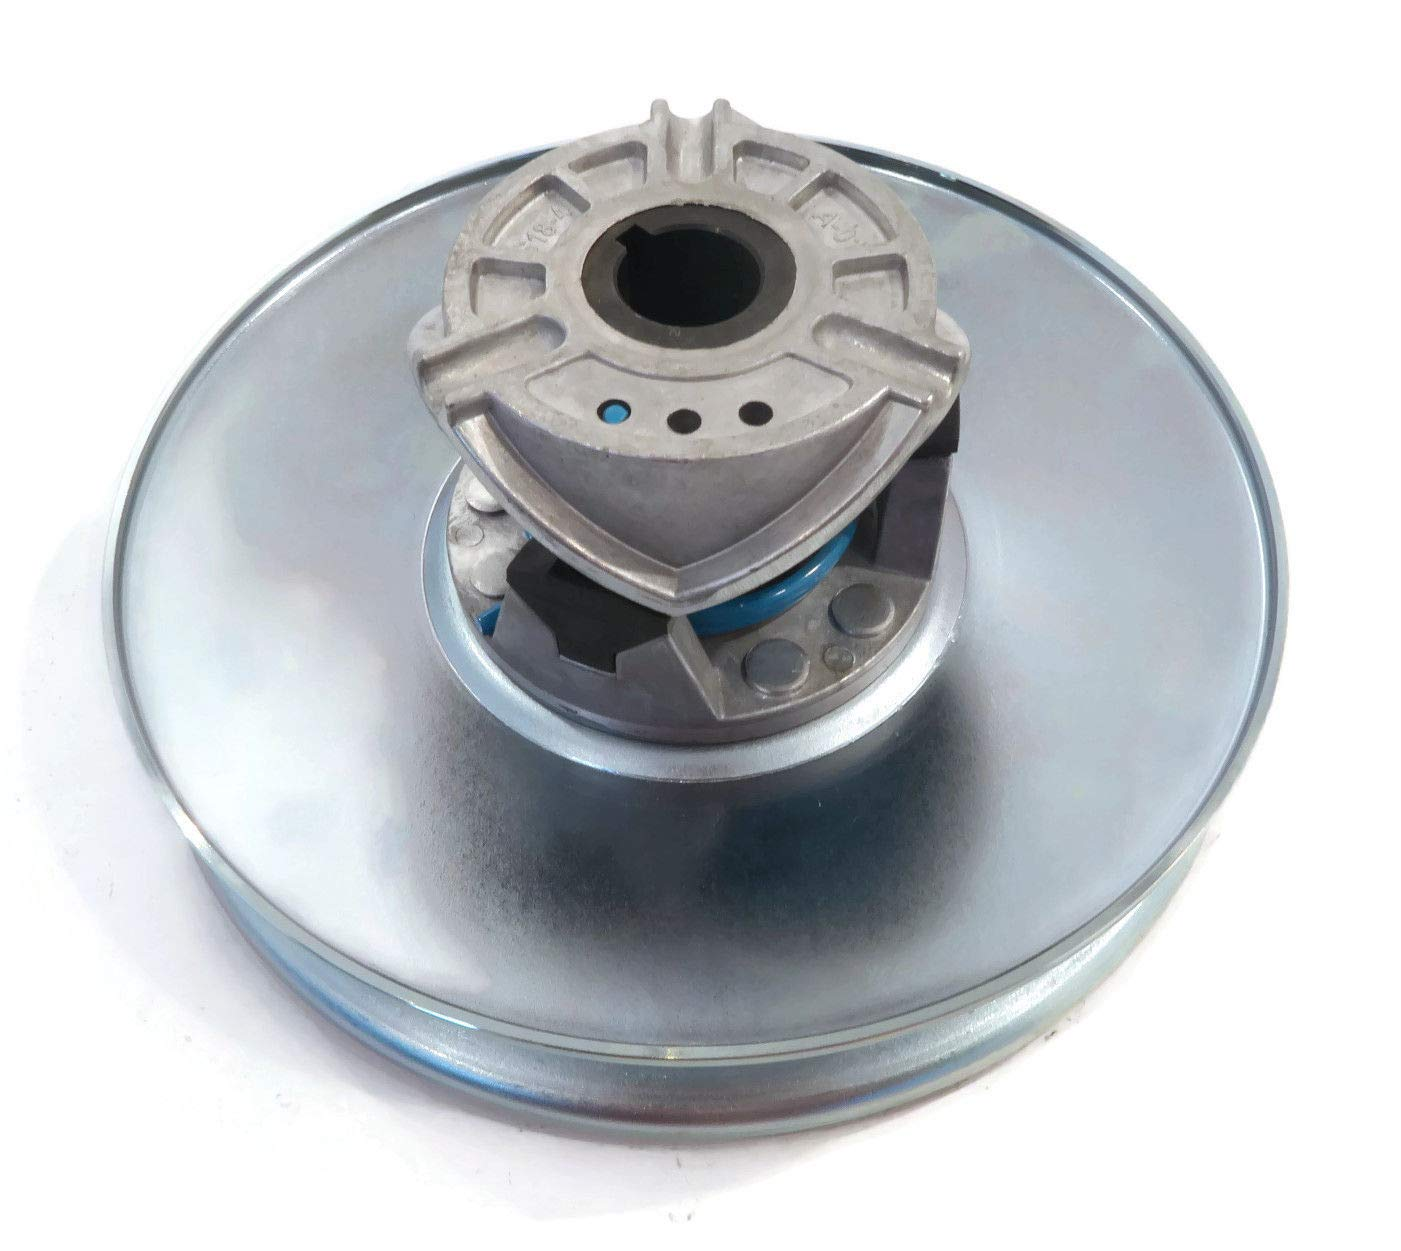 The ROP Shop New Gas Driven Clutch fits Club Car 1984-1996 DS Carryall Turf 1, 2, 6 Salsbury